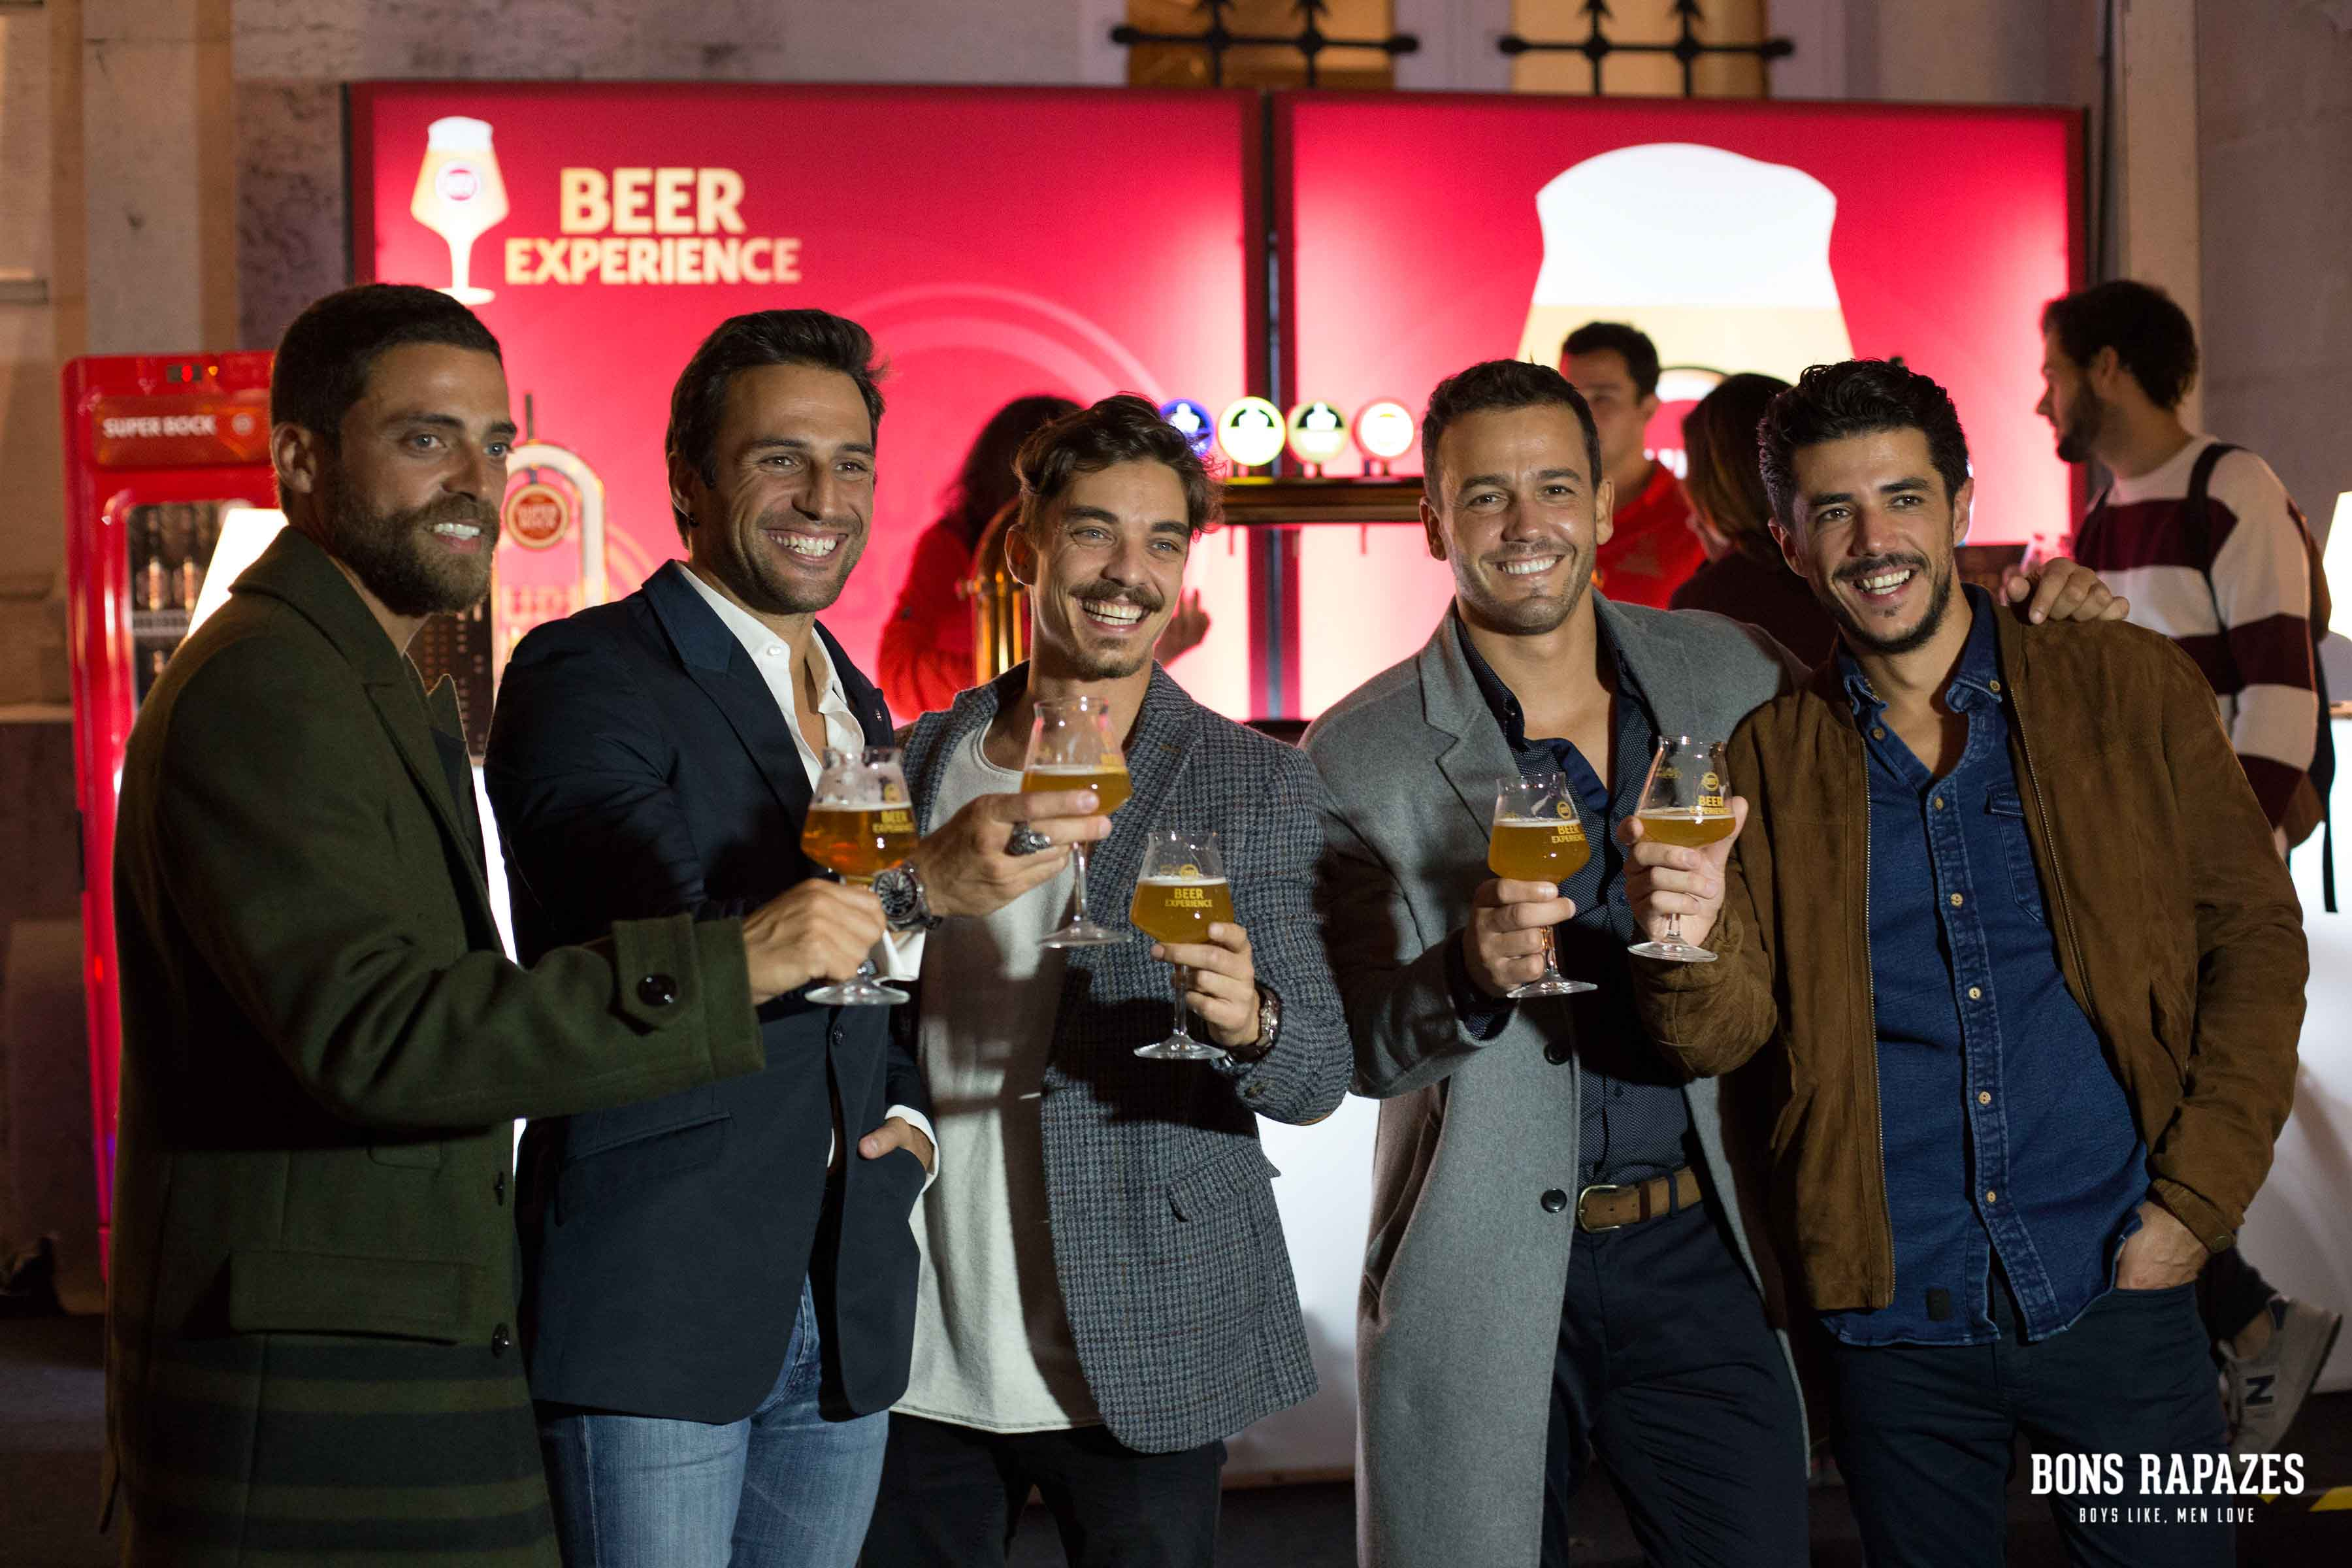 bons-rapazes-super-bock-beer-experience-6